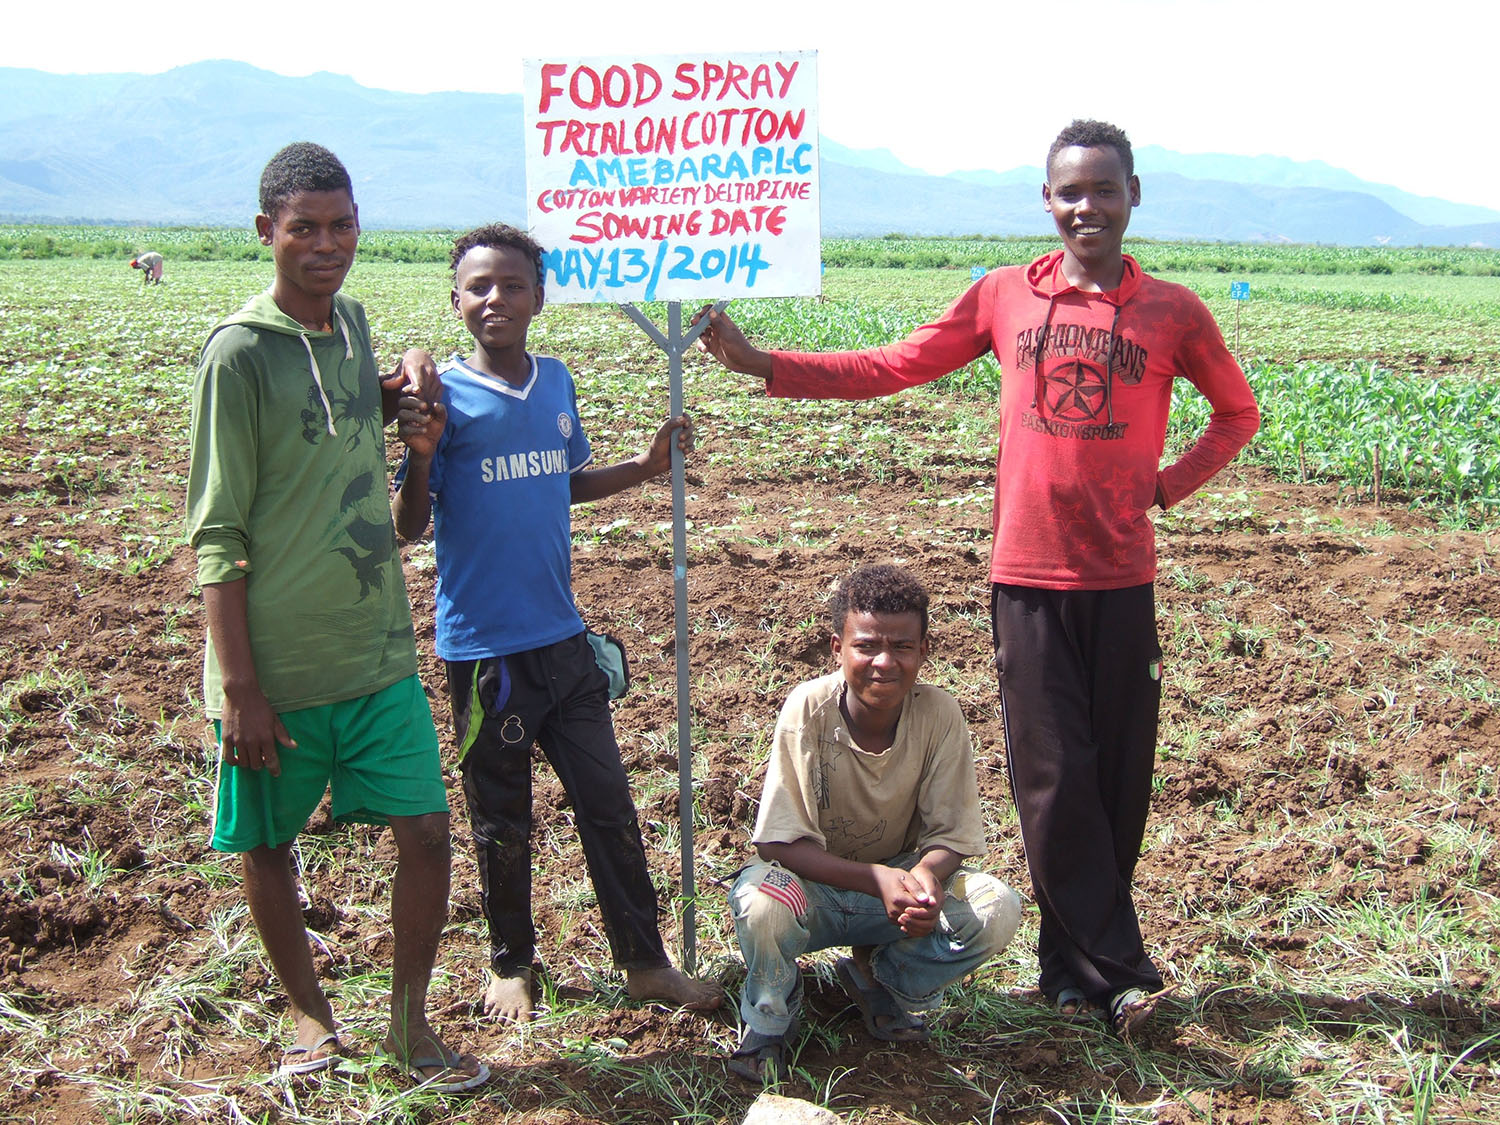 Food Spray Trial on Cotton in Ethiopia